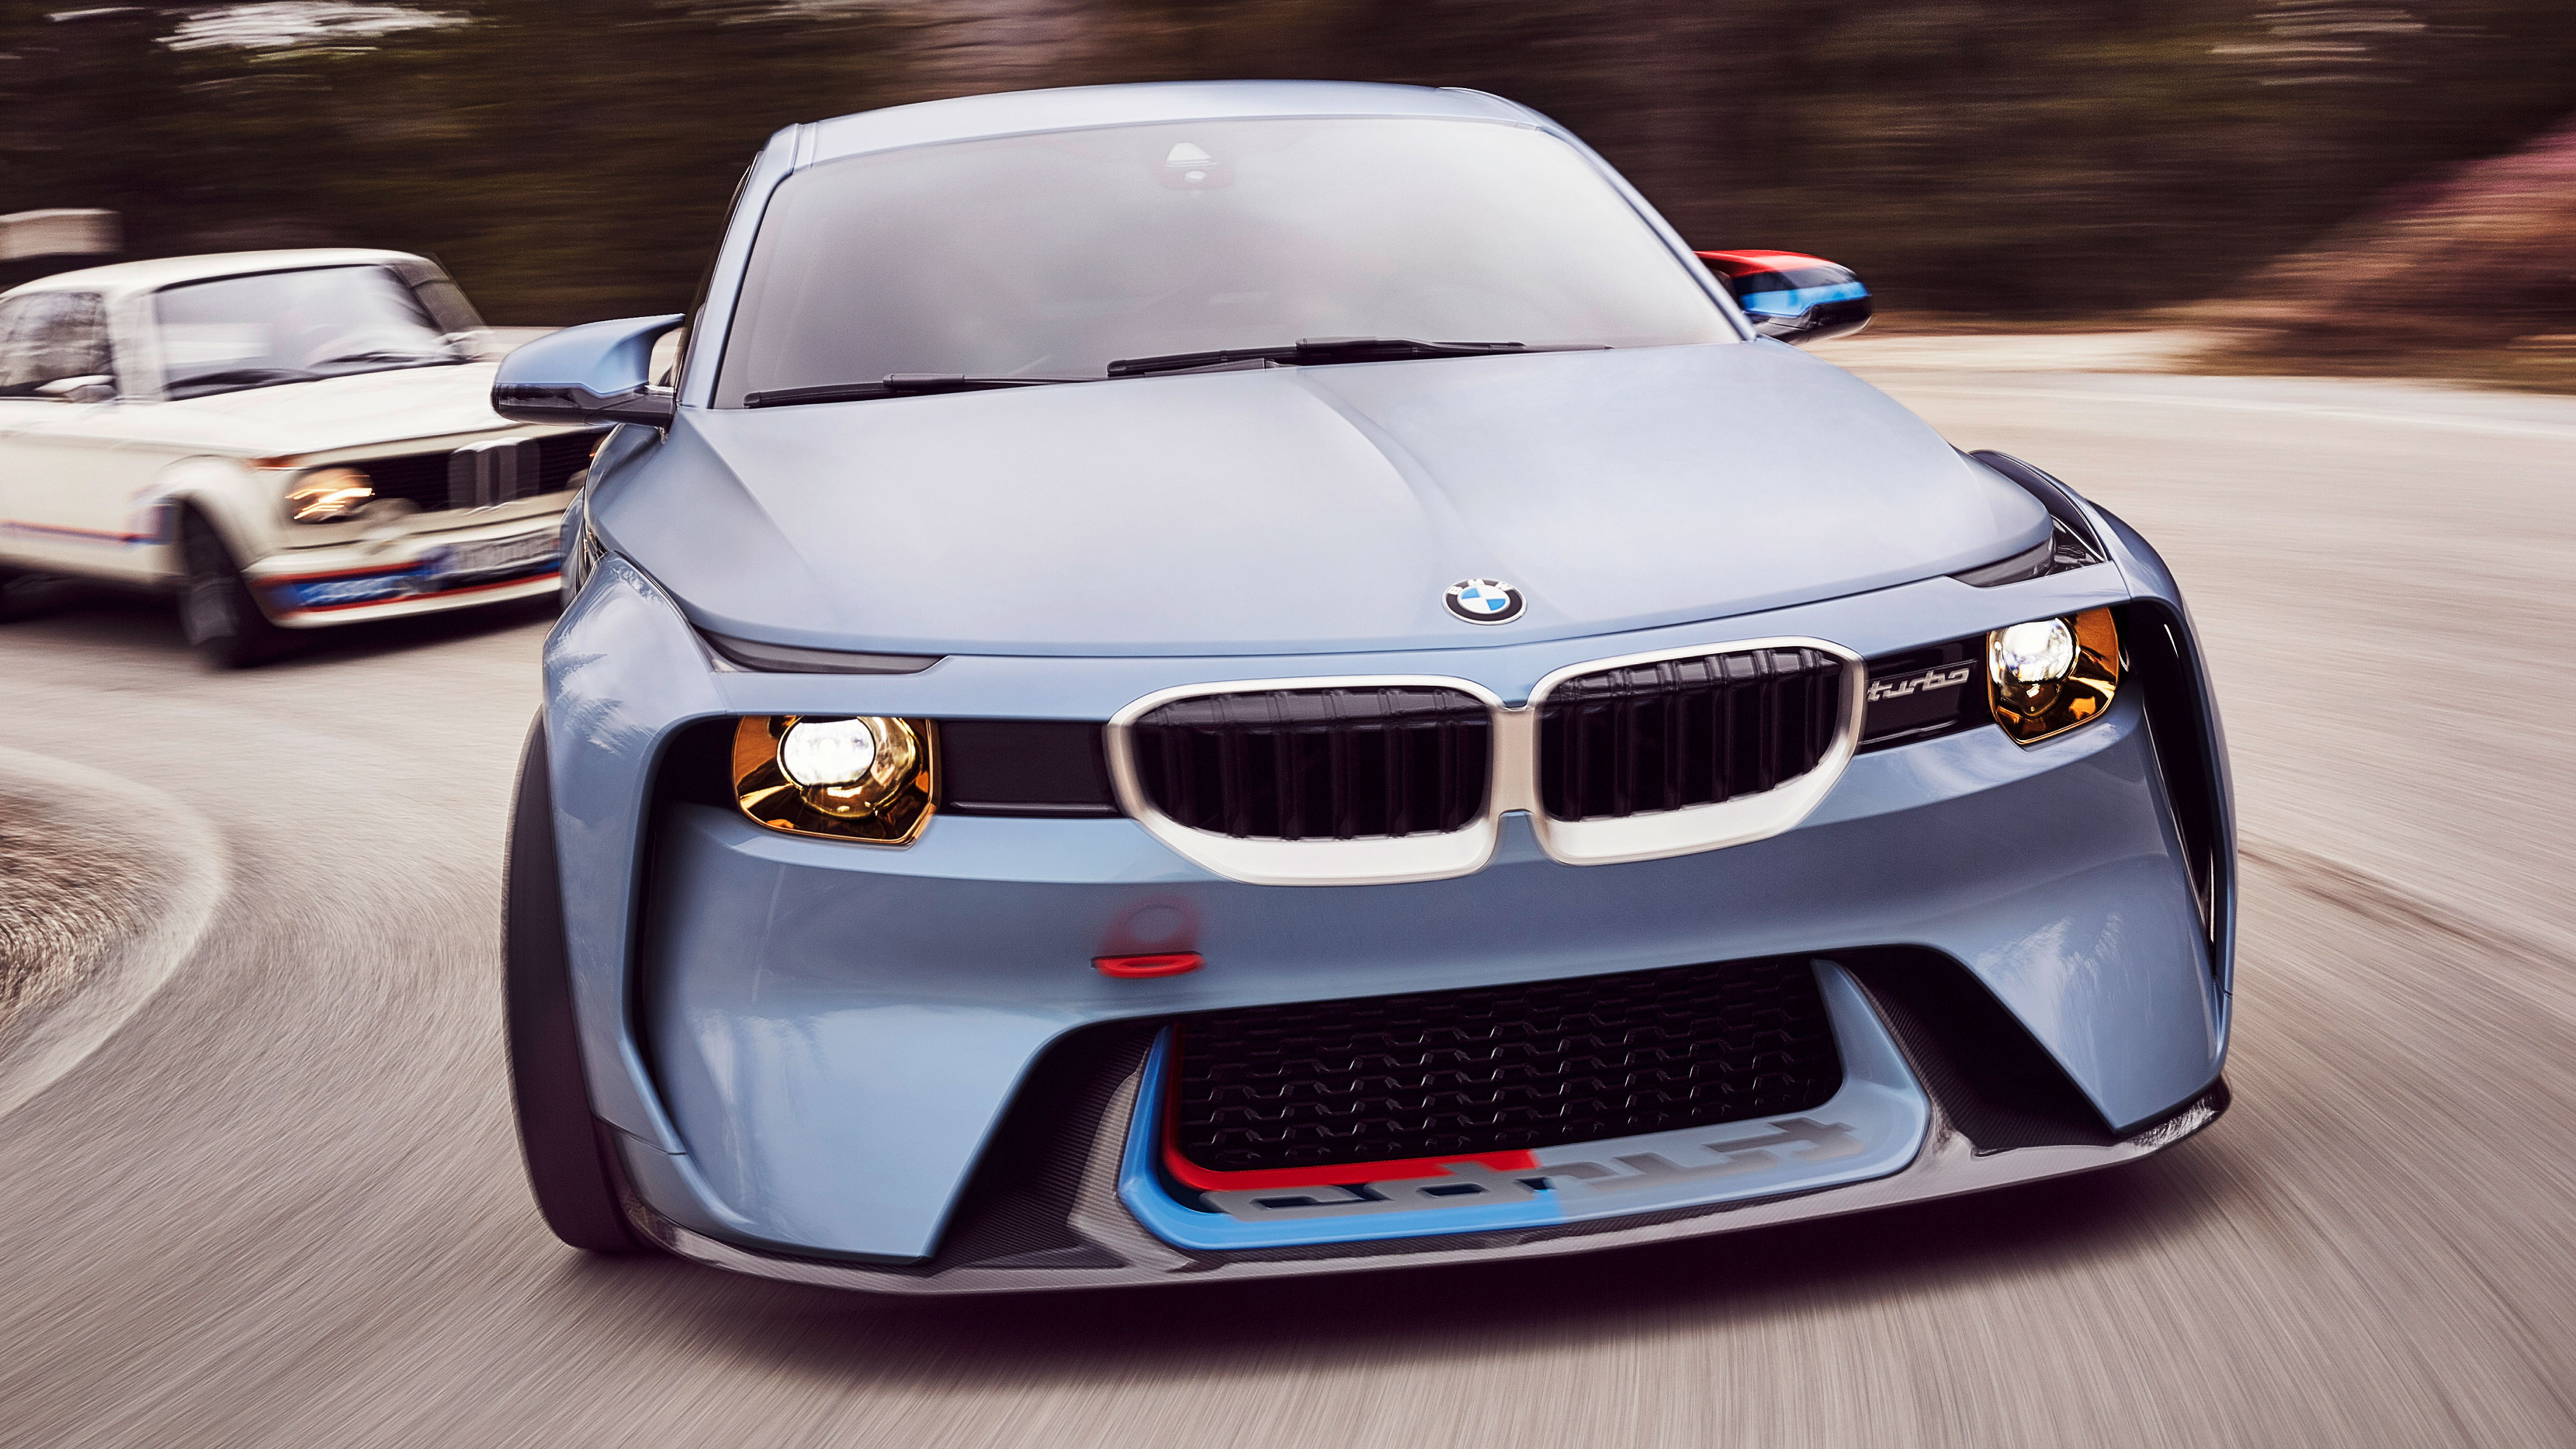 Back to the future: BMW unveils 2002 Hommage concept | Top ...